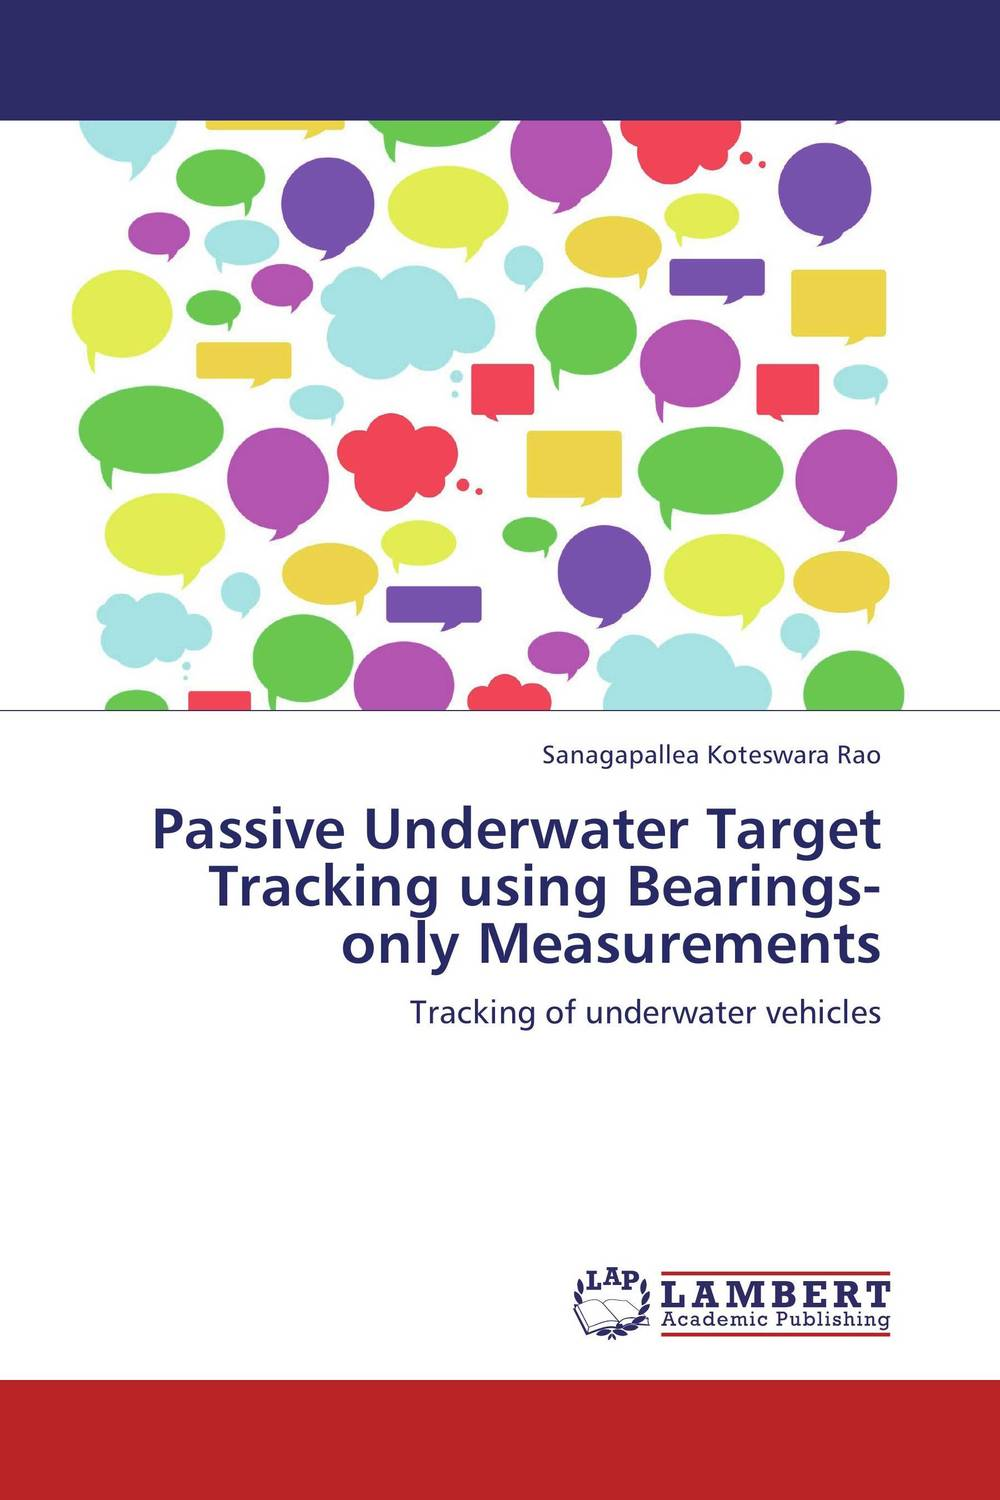 Passive Underwater Target Tracking using Bearings-only Measurements r185352210 standard linear bearings